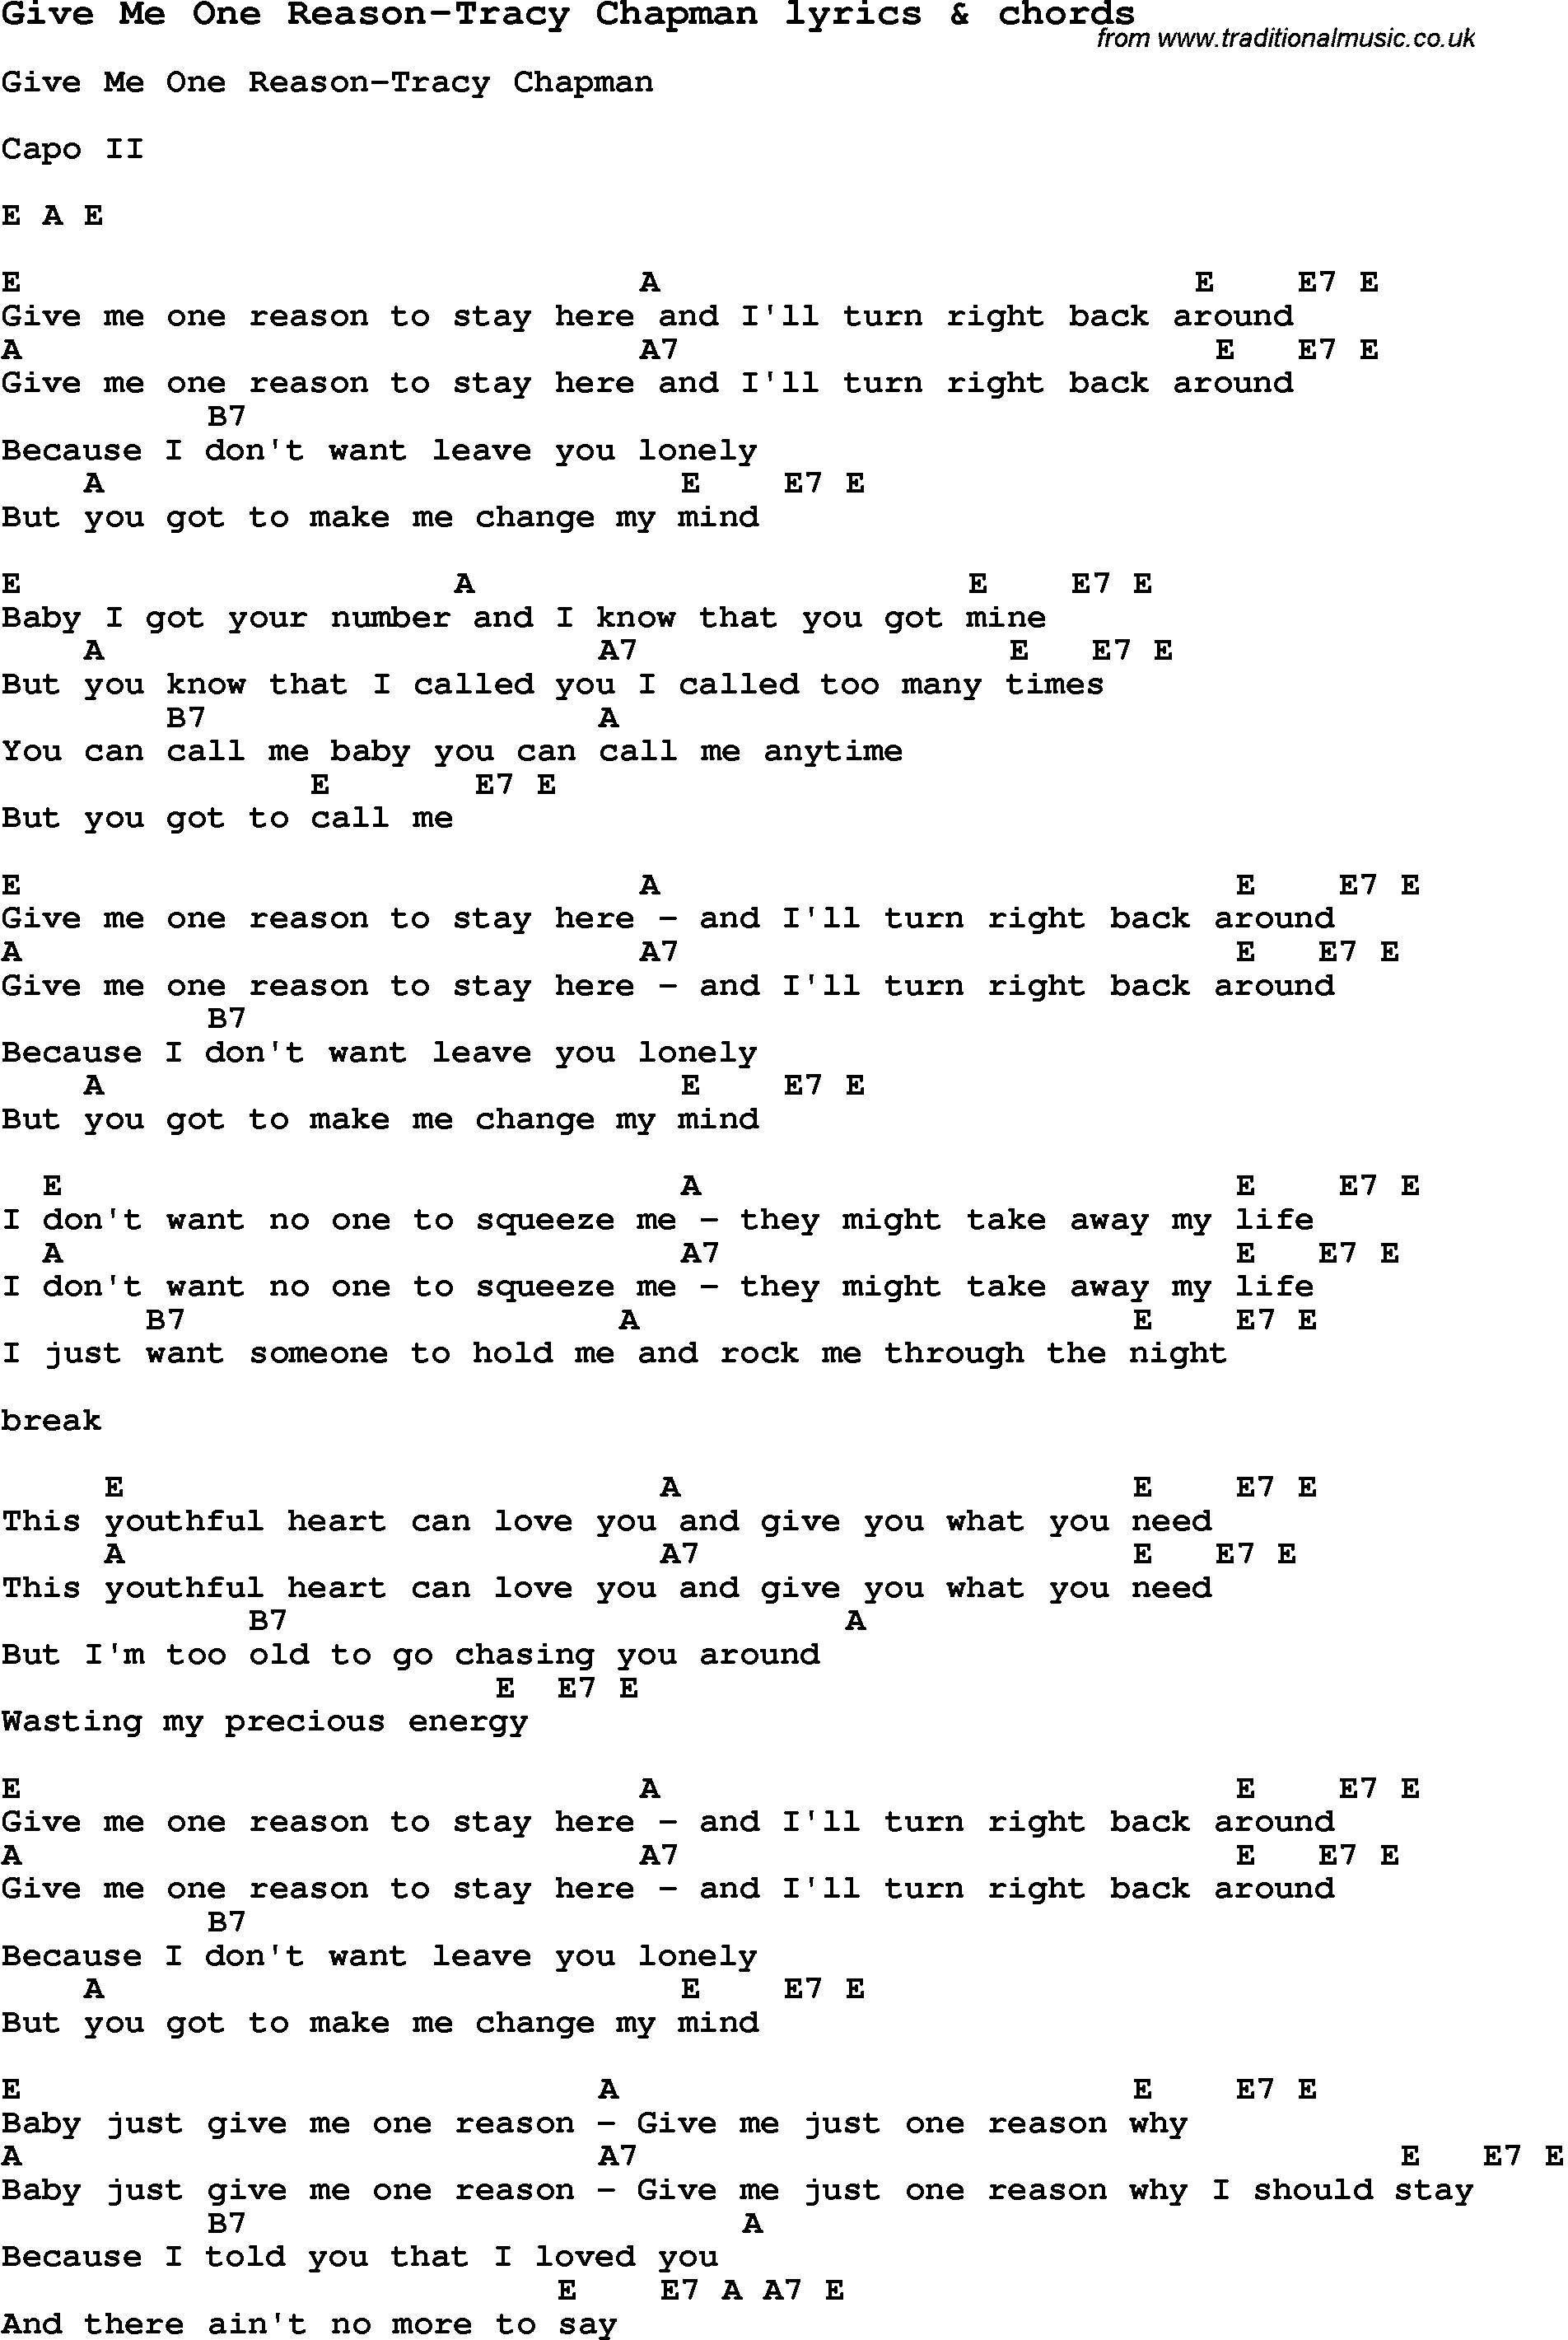 Love song lyrics for give me one reason tracy chapman with chords love song lyrics for give me one reason tracy chapman with chords for ukulele hexwebz Gallery